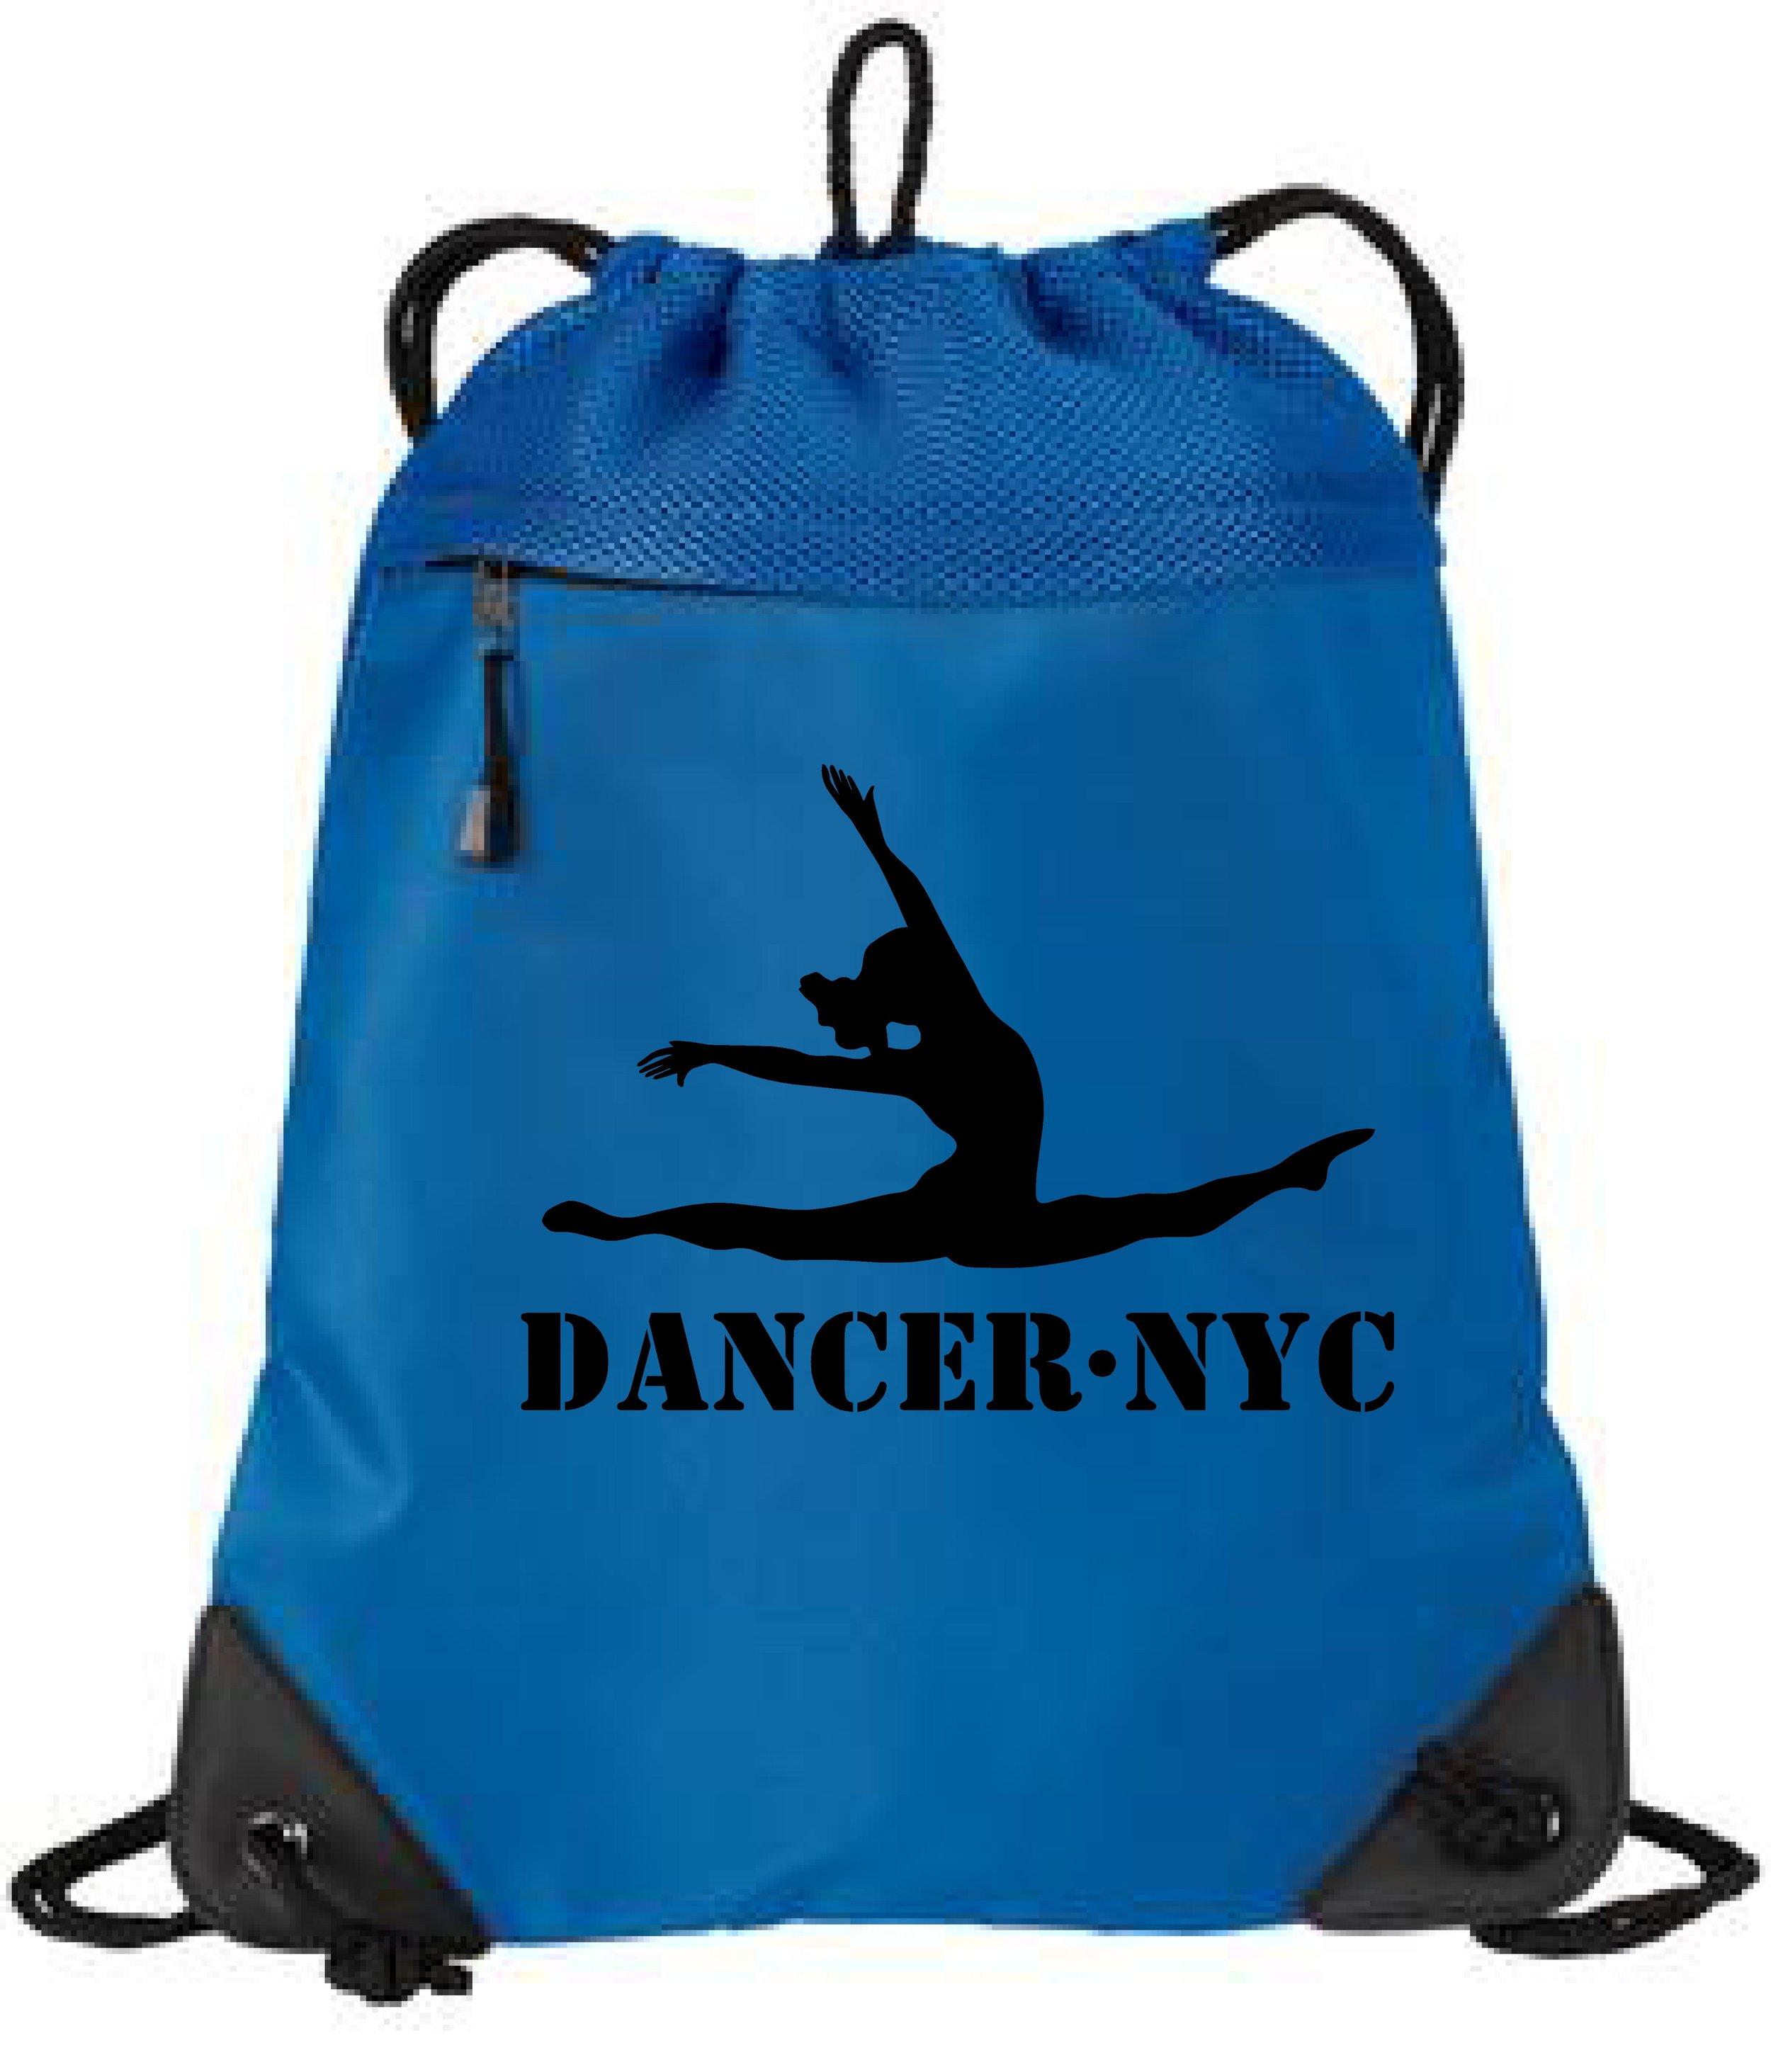 DANCER.NYC TOTE BAG - Bright Blue